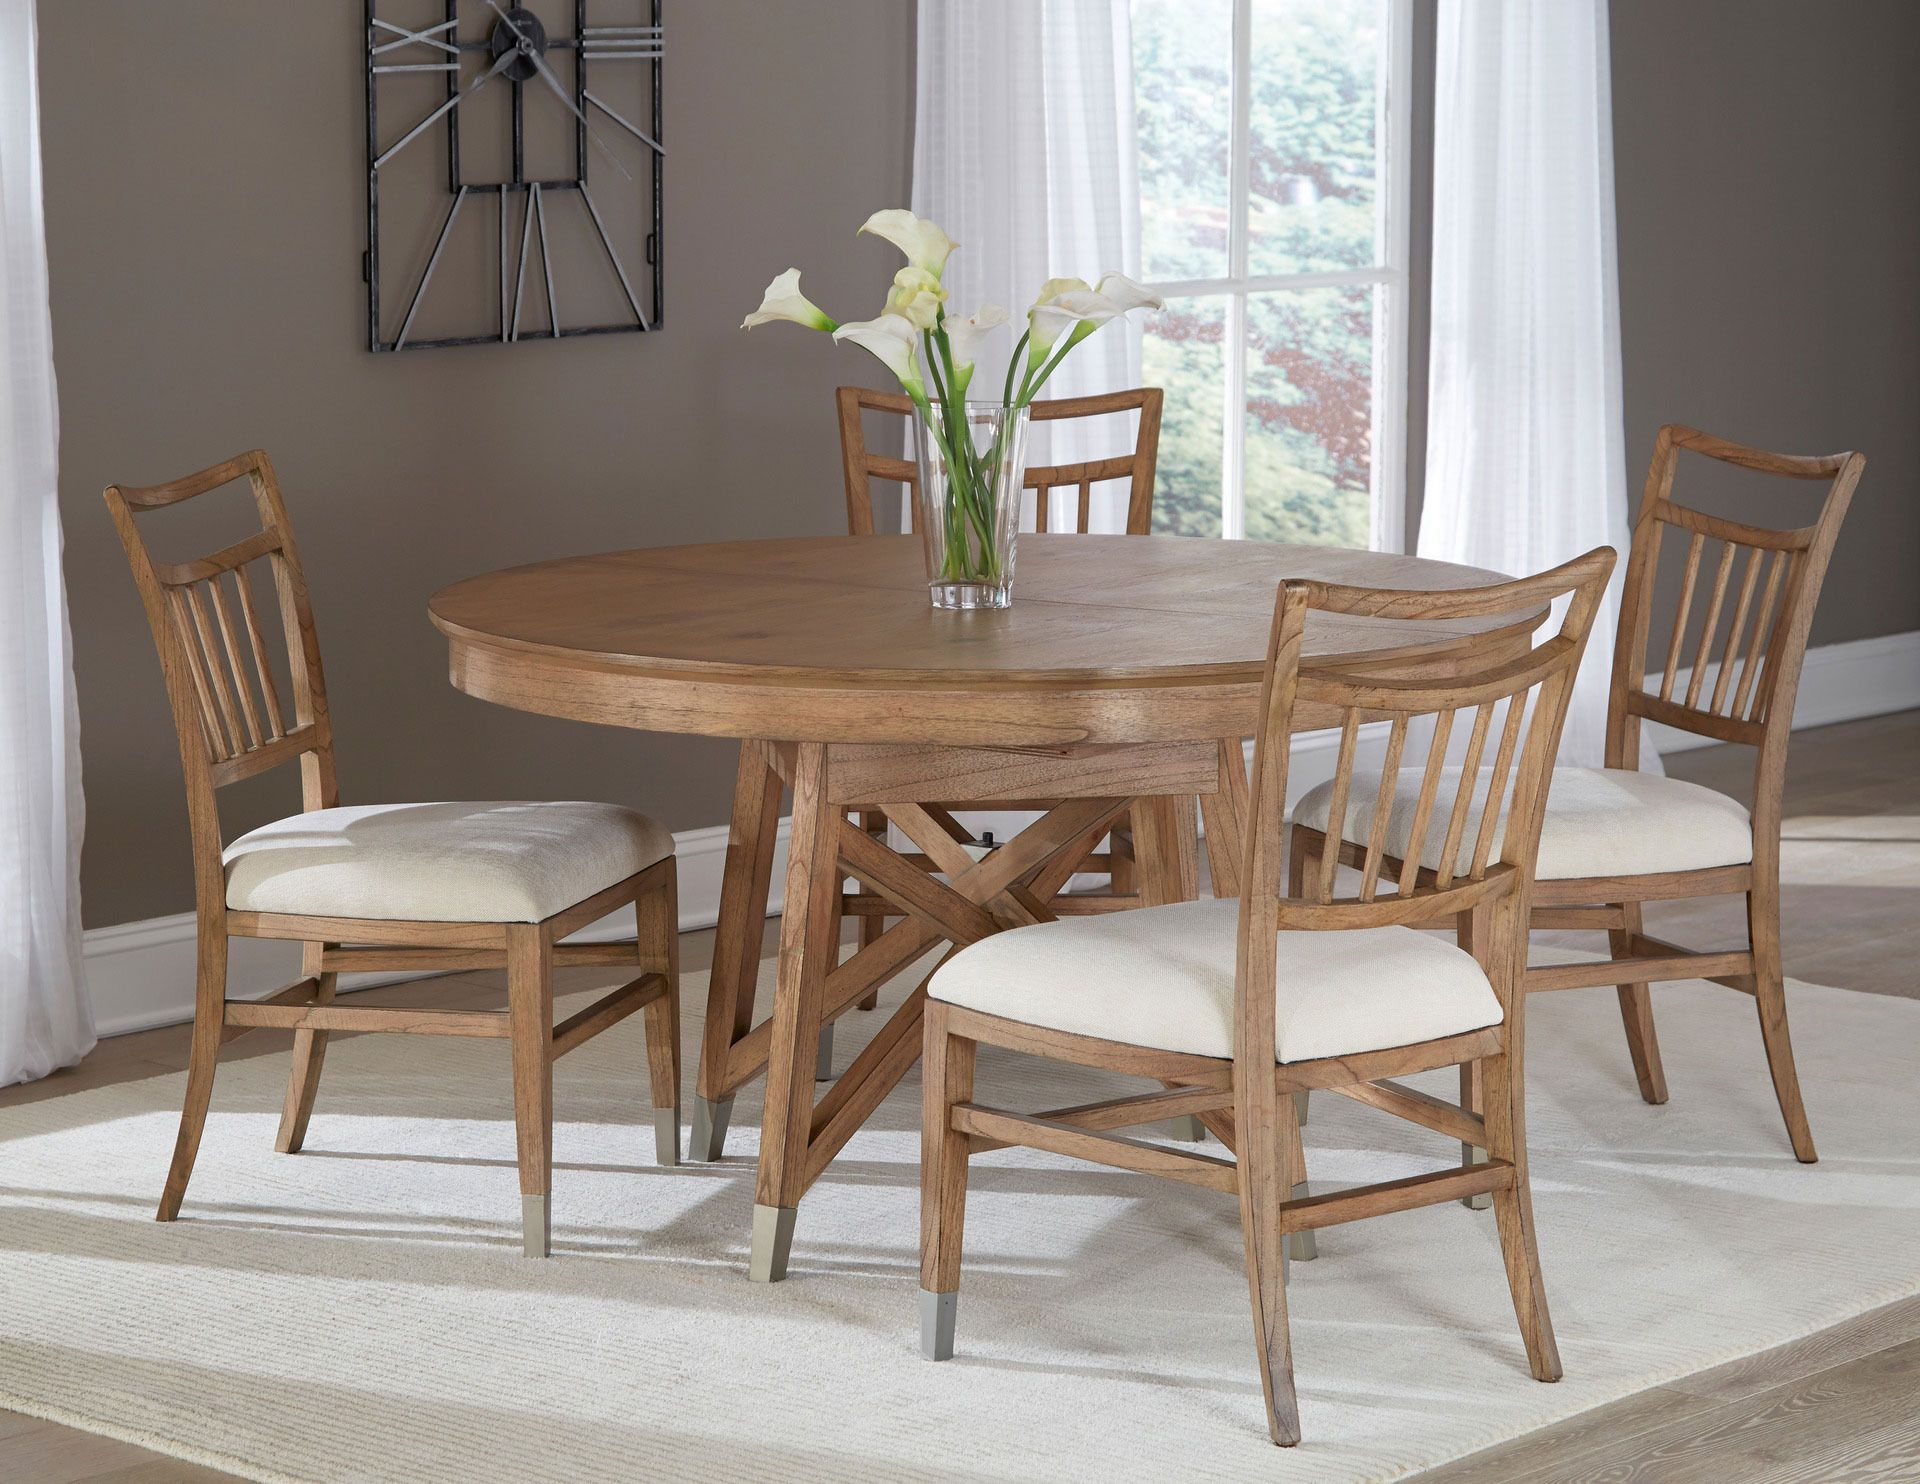 Avery Park Round Dining Room Set   Hekman   Home Gallery Regarding Most Current Avery Rectangular Dining Tables (View 18 of 25)